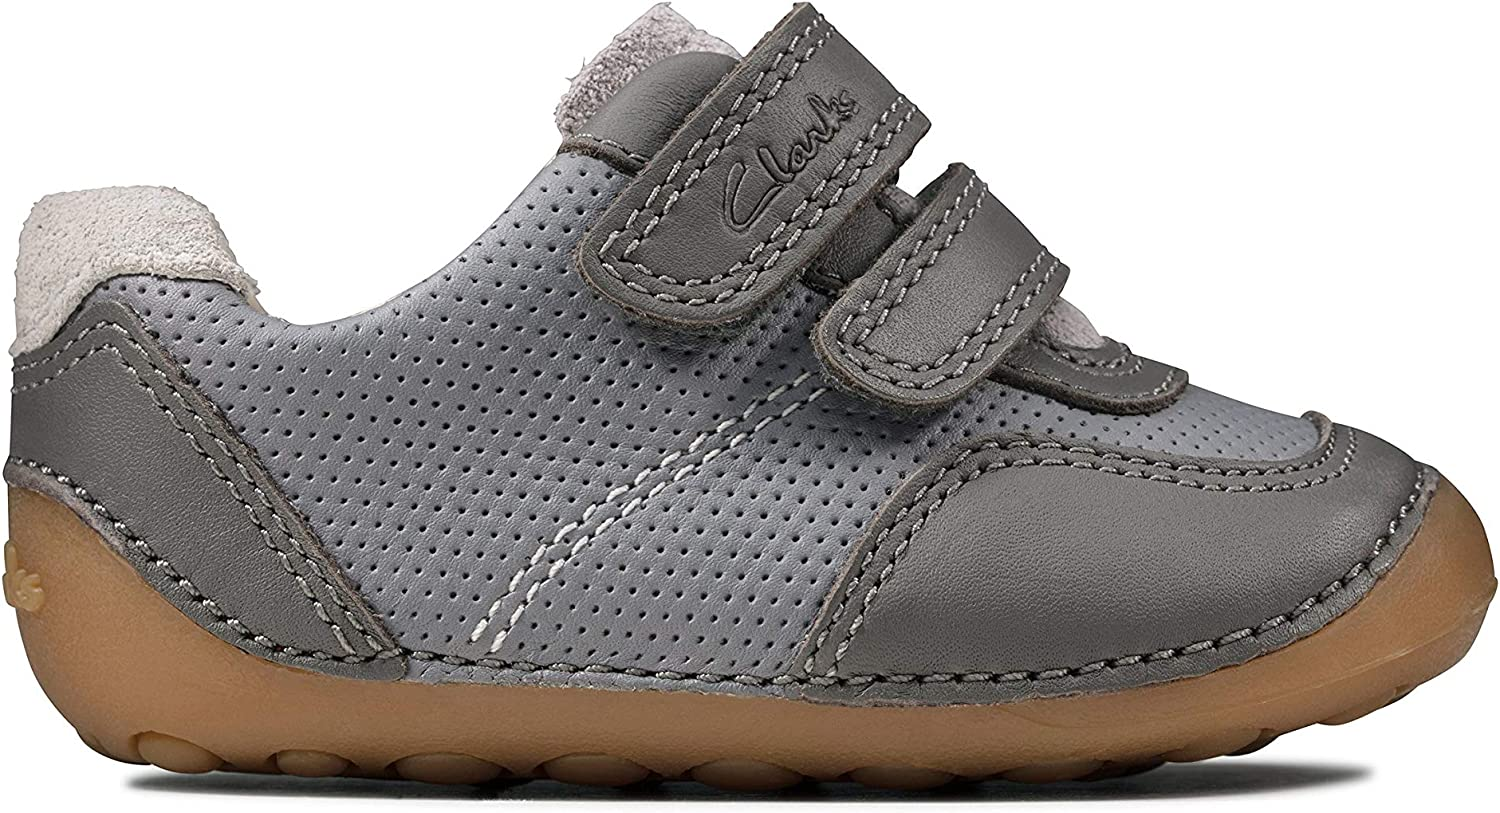 Clarks Tiny Dusk Toddler Grey Combi Leather Boys Rip Tape Pre Walker Shoes